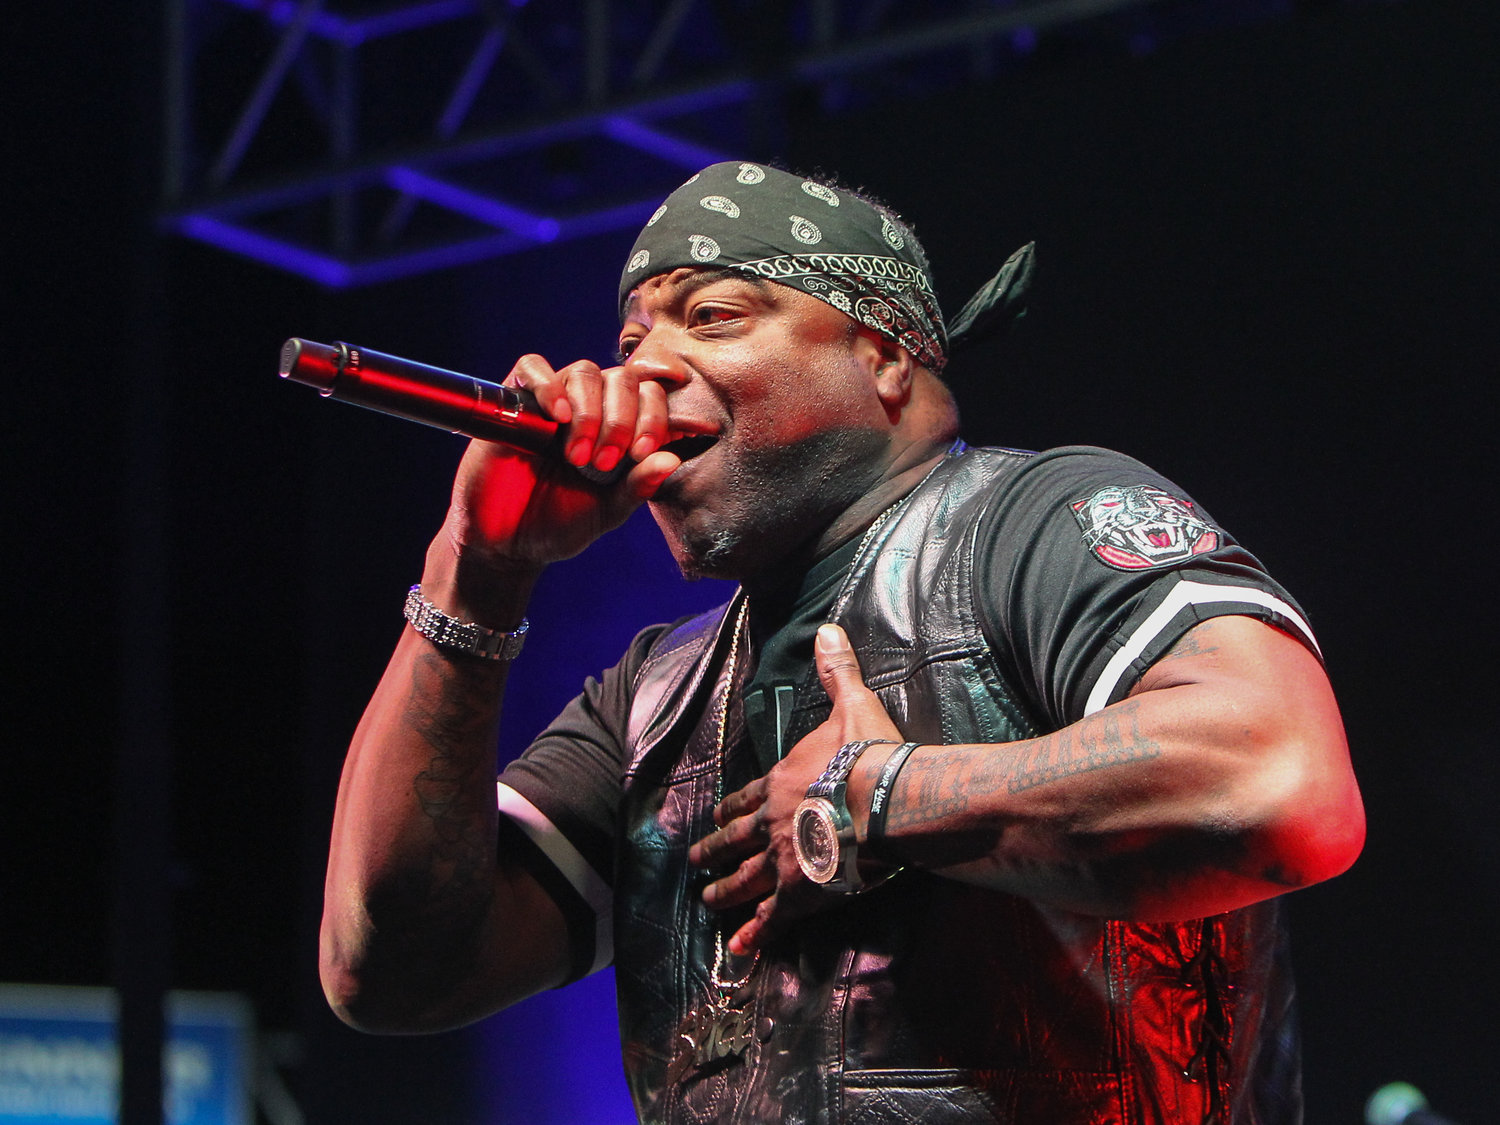 Spice 1 performs on the Puff Puff Pass tour on Sunday, Dec. 2, 2018 in Round Rock, TX.